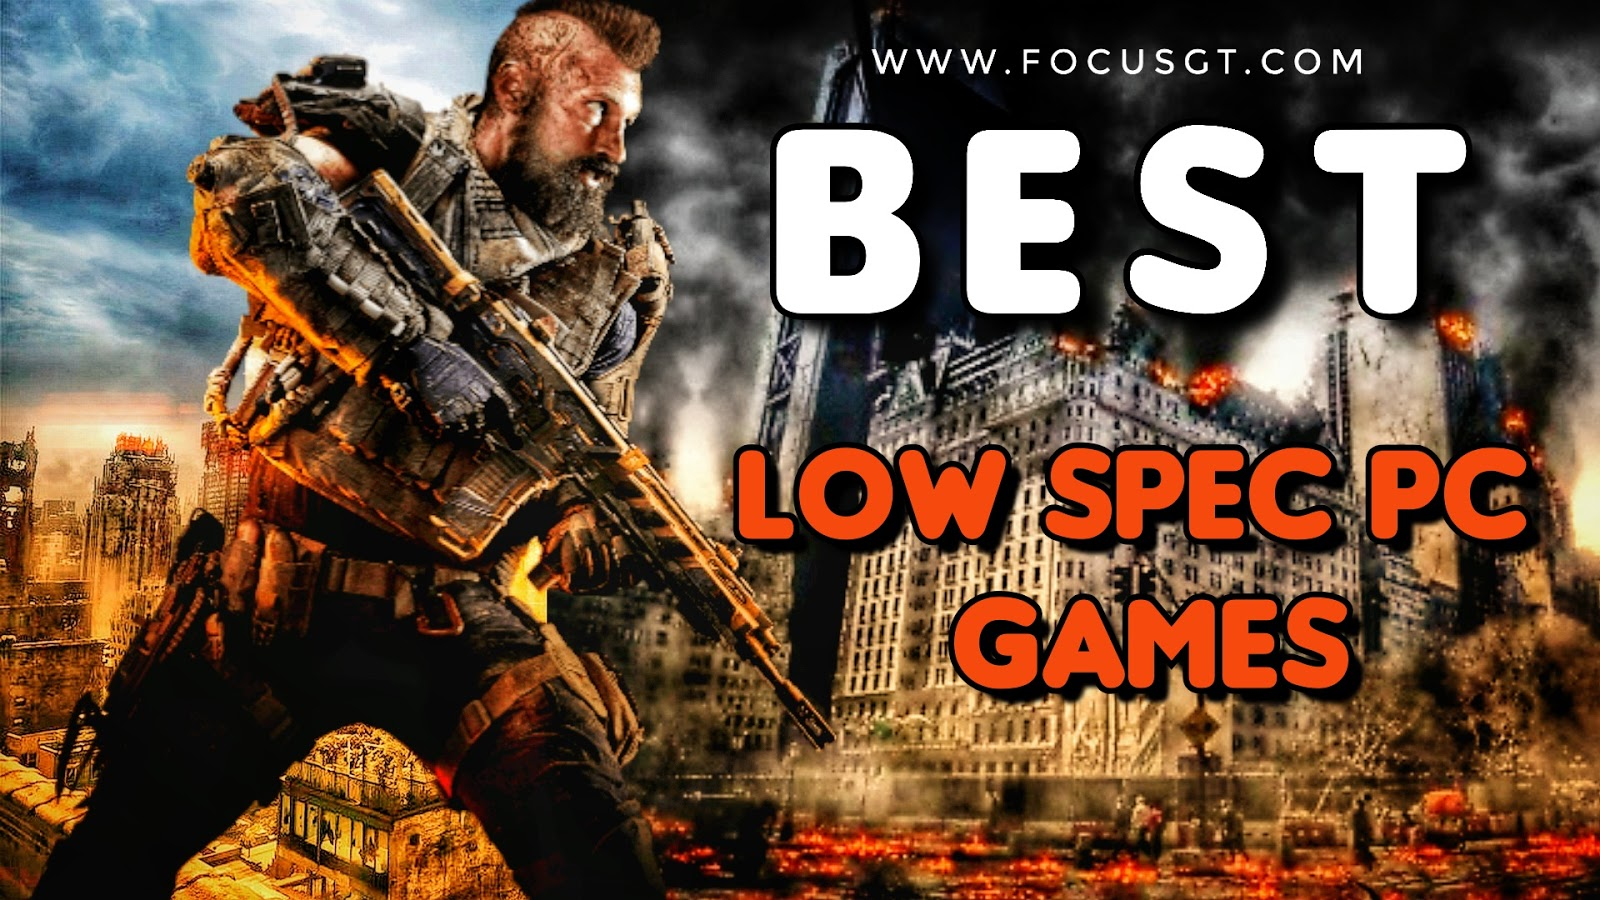 TOP 10 Games for Low SPEC PC (512 MB VRAM / 1 GB VRAM / Intel HD Graphics) | Focus GT